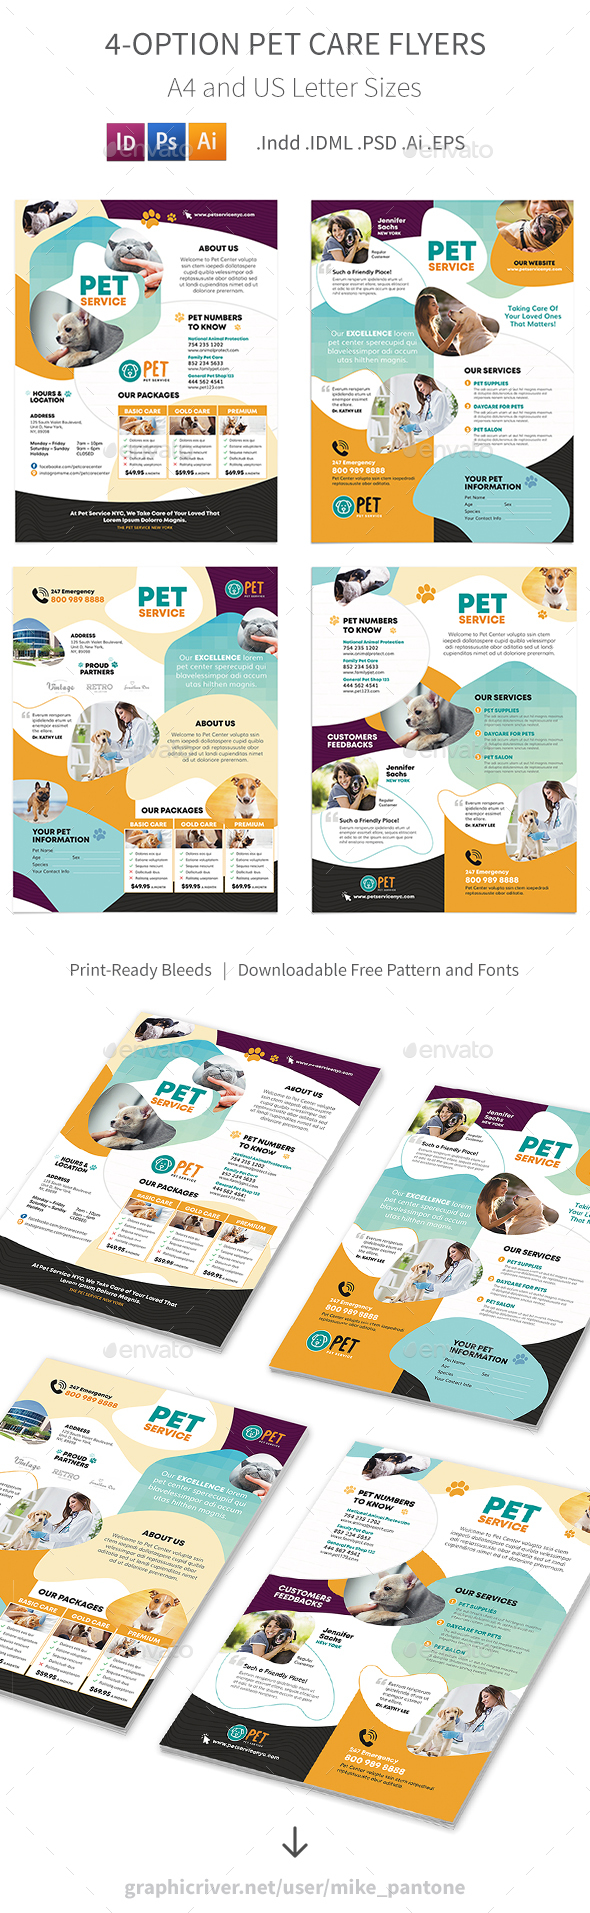 Pet Care Flyers 7 – 4 Options - Corporate Flyers